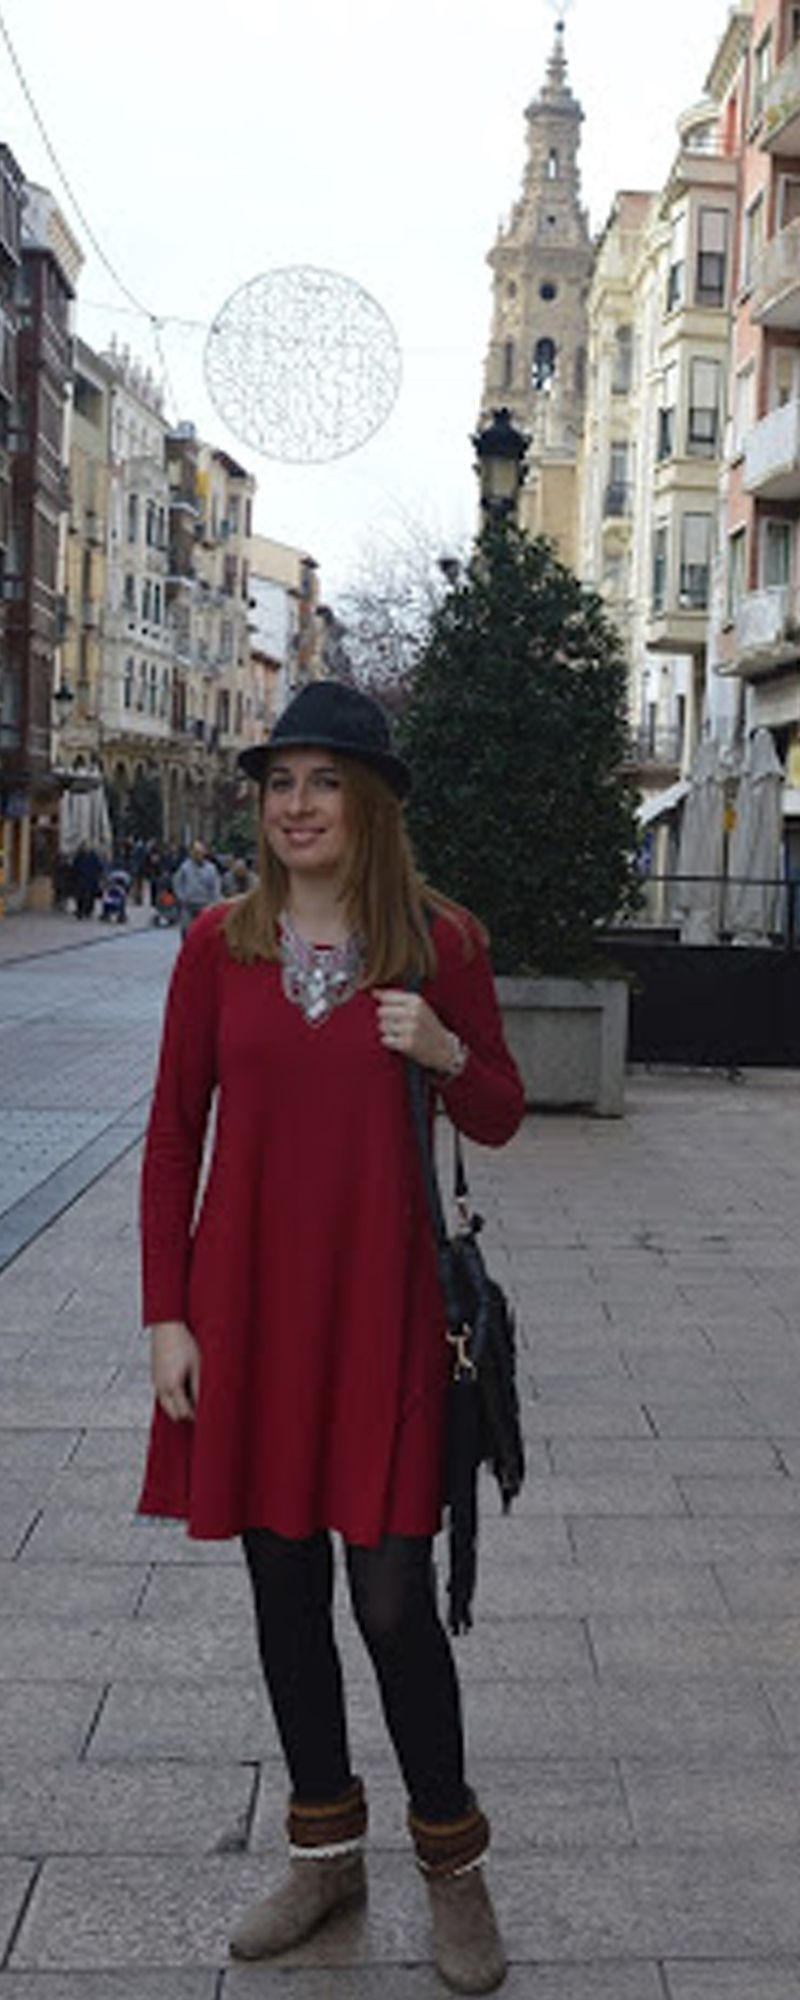 Basic stable dresses for fall & winter for women .Burgundy long sleeve dress. Casual shift jersey bodydoll dress . Love the good color just as picture ,love the casual versatile design and love the soft warm feeling with it !